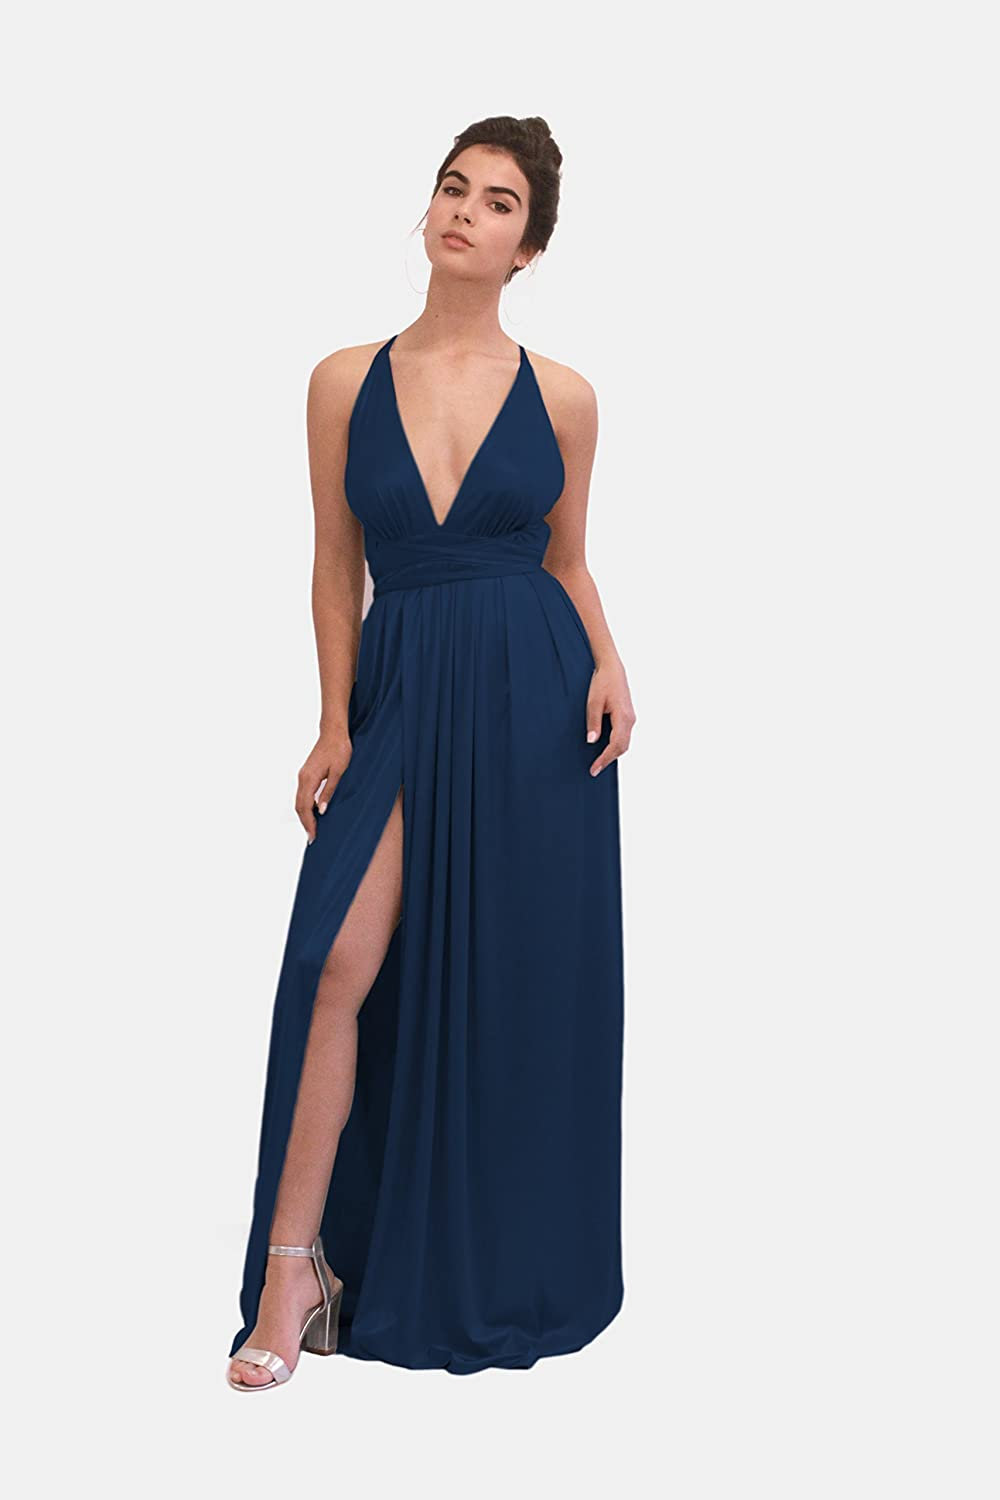 Amazon Com Navy Blue Metallic Evening Dress Maxi Long Bridesmaid